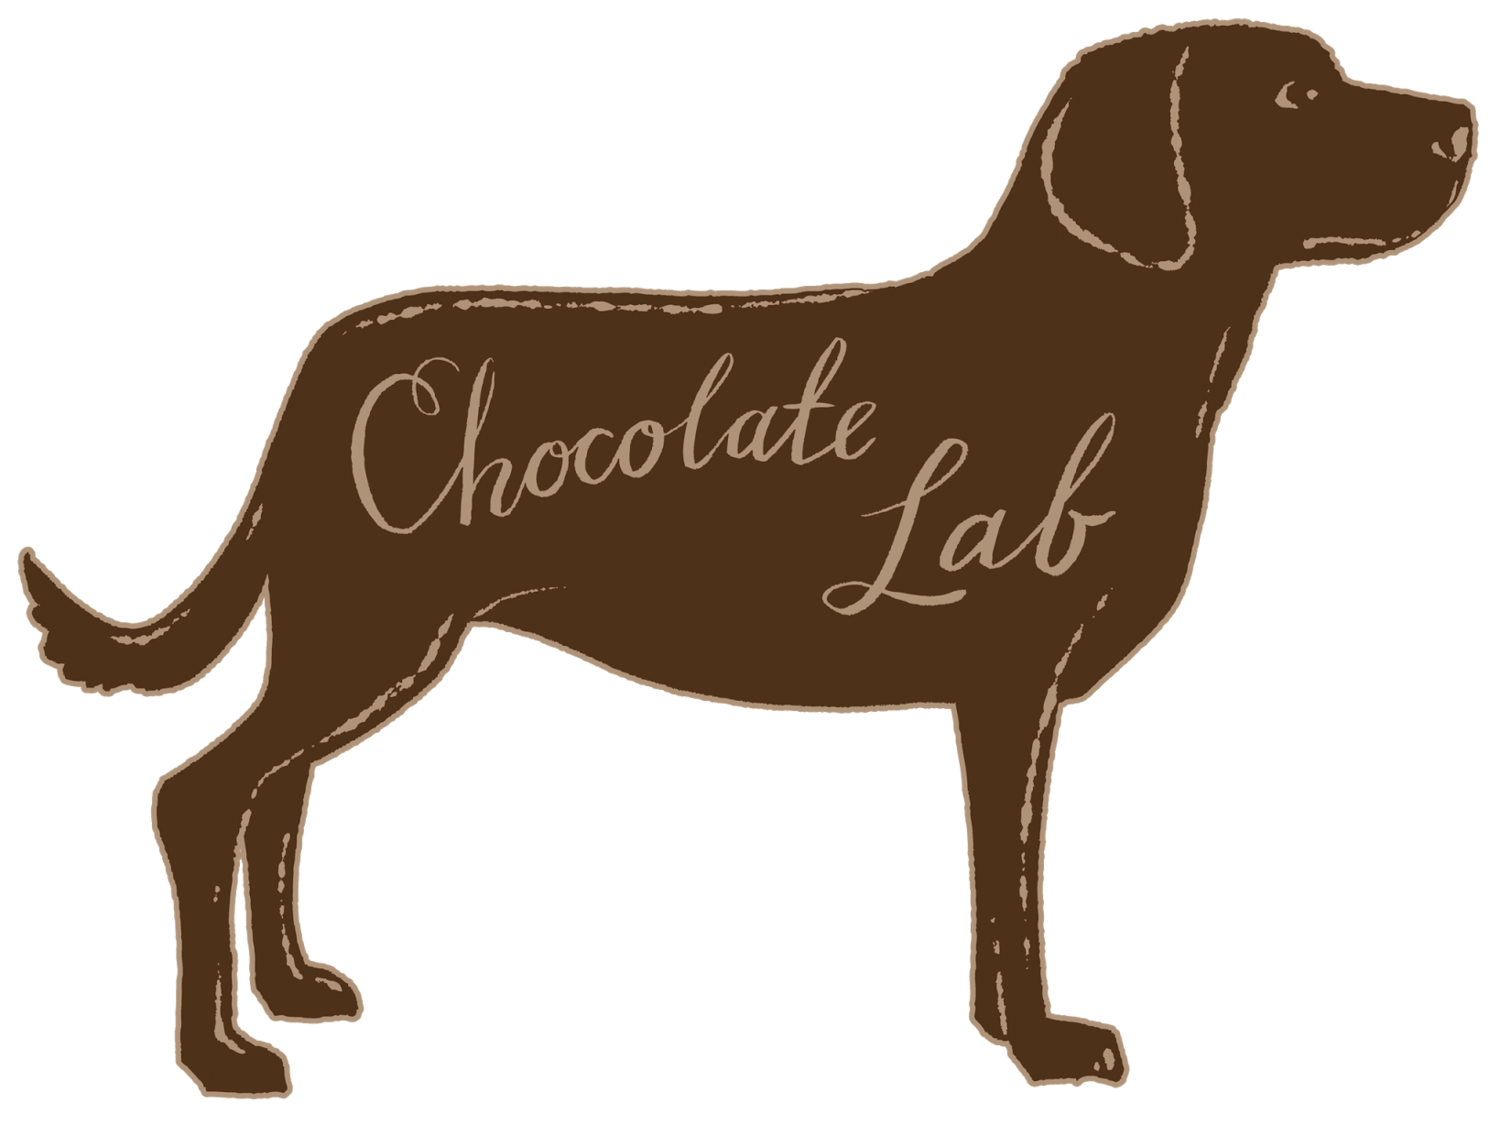 The Chocolate Lab